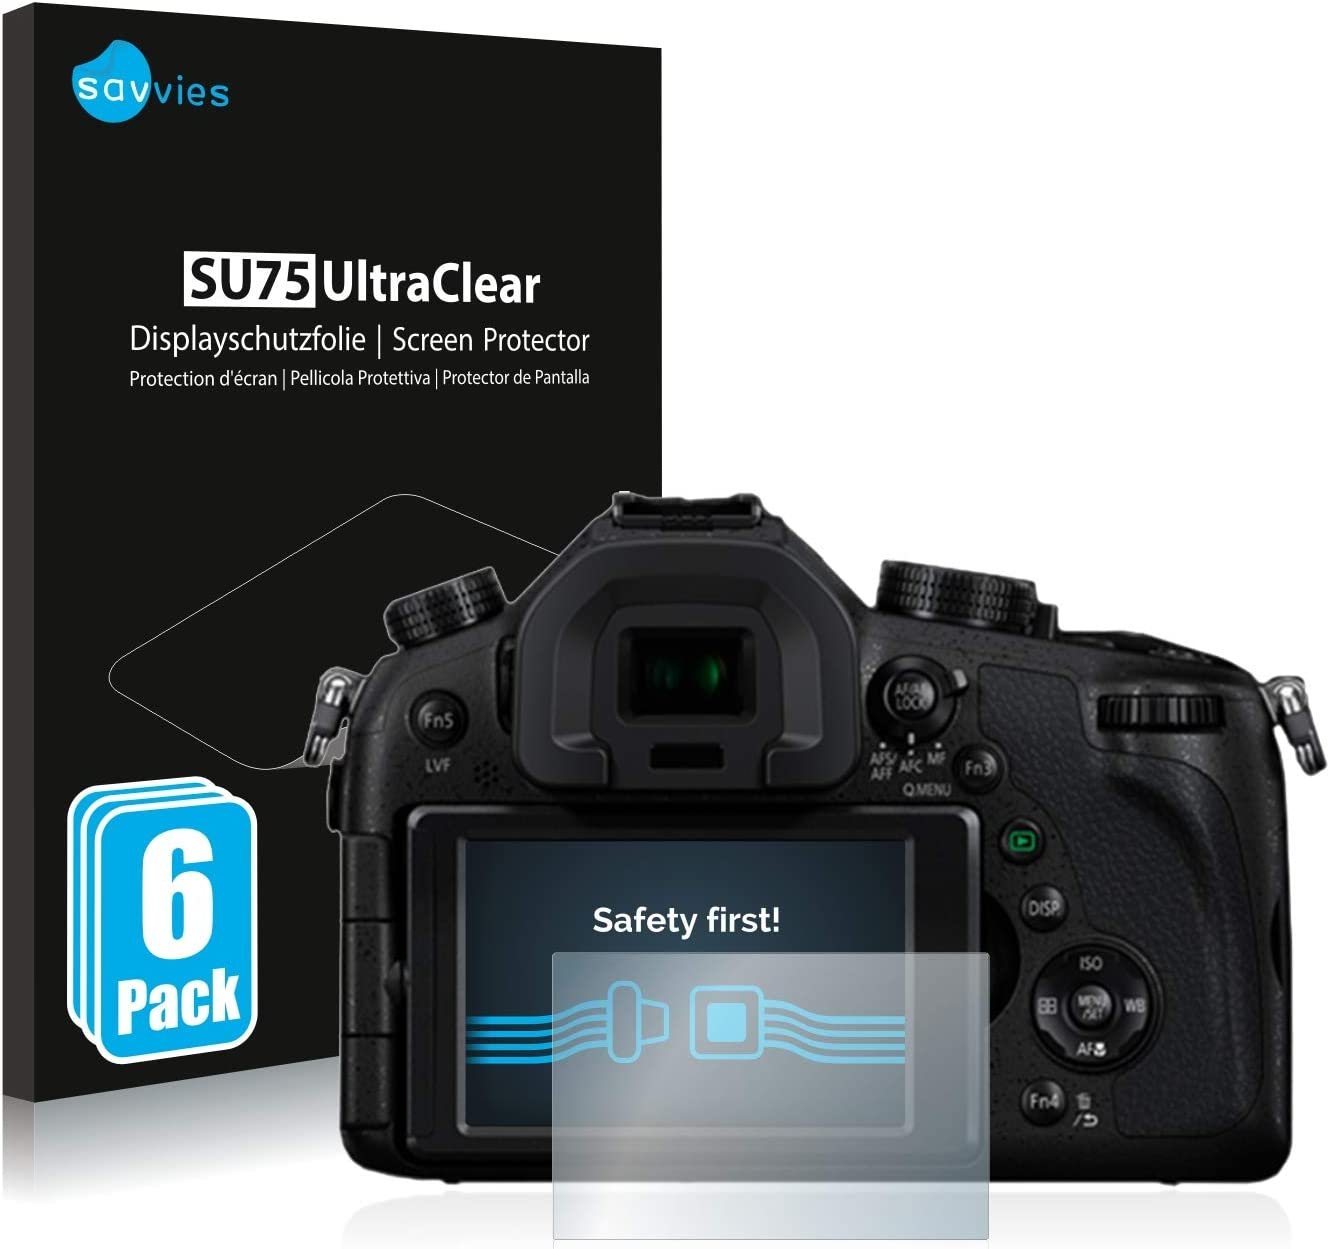 6 Pack Savvies Screen Protector compatible with Panasonic Lumix DMC-FZ1000 Screen Protector Clear Protection Film